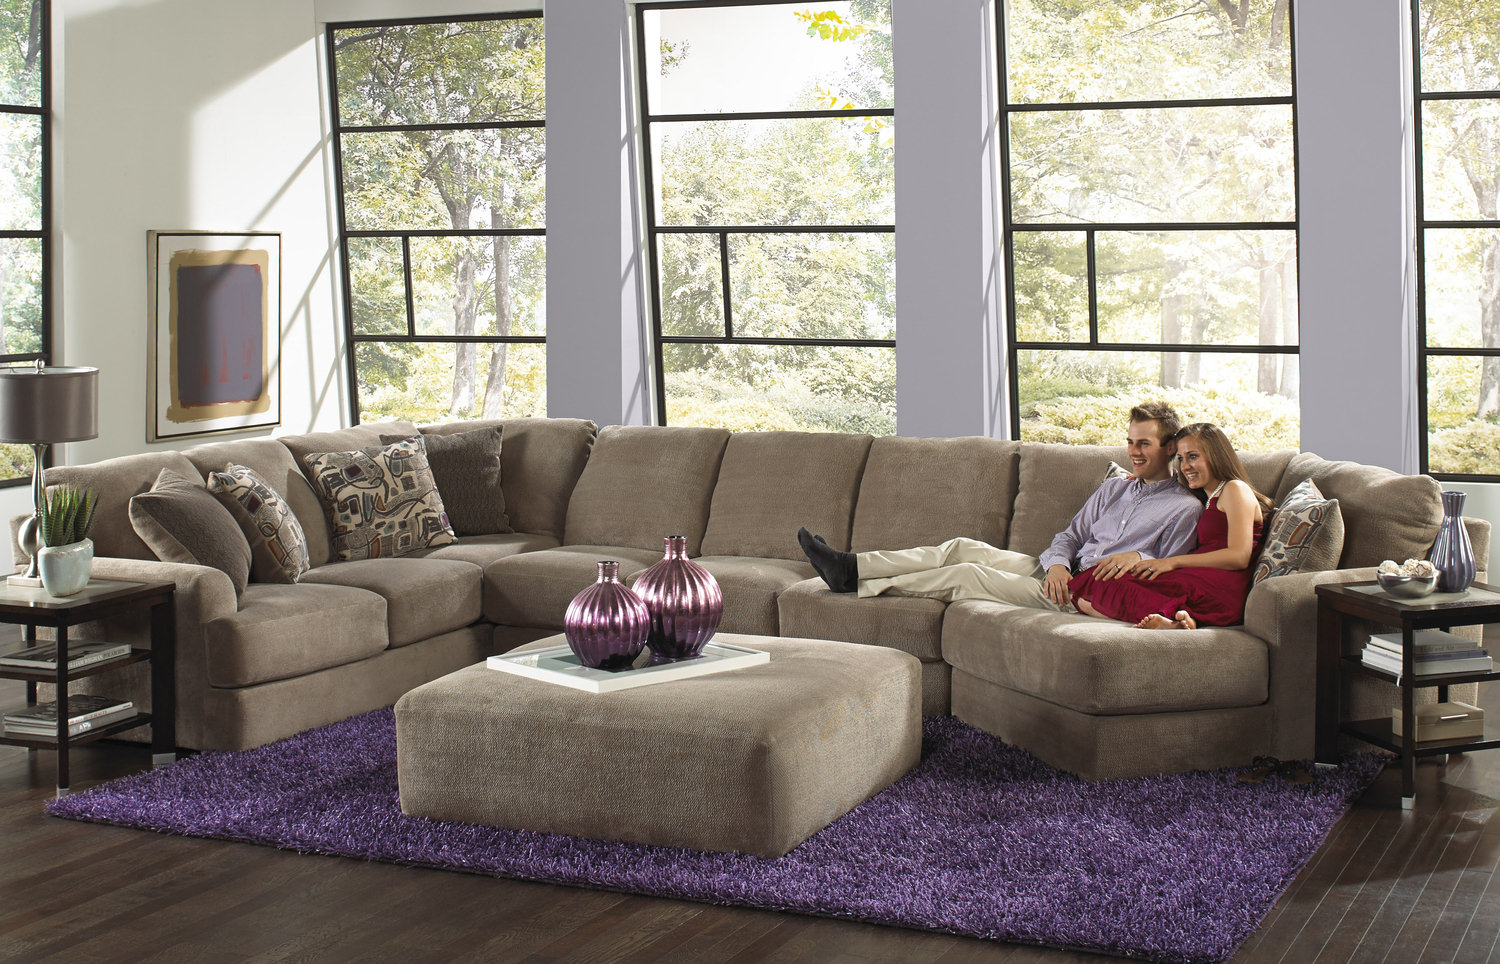 Product Regal 3 Piece Modular Sectional and Cocktail Ottoman Room Package